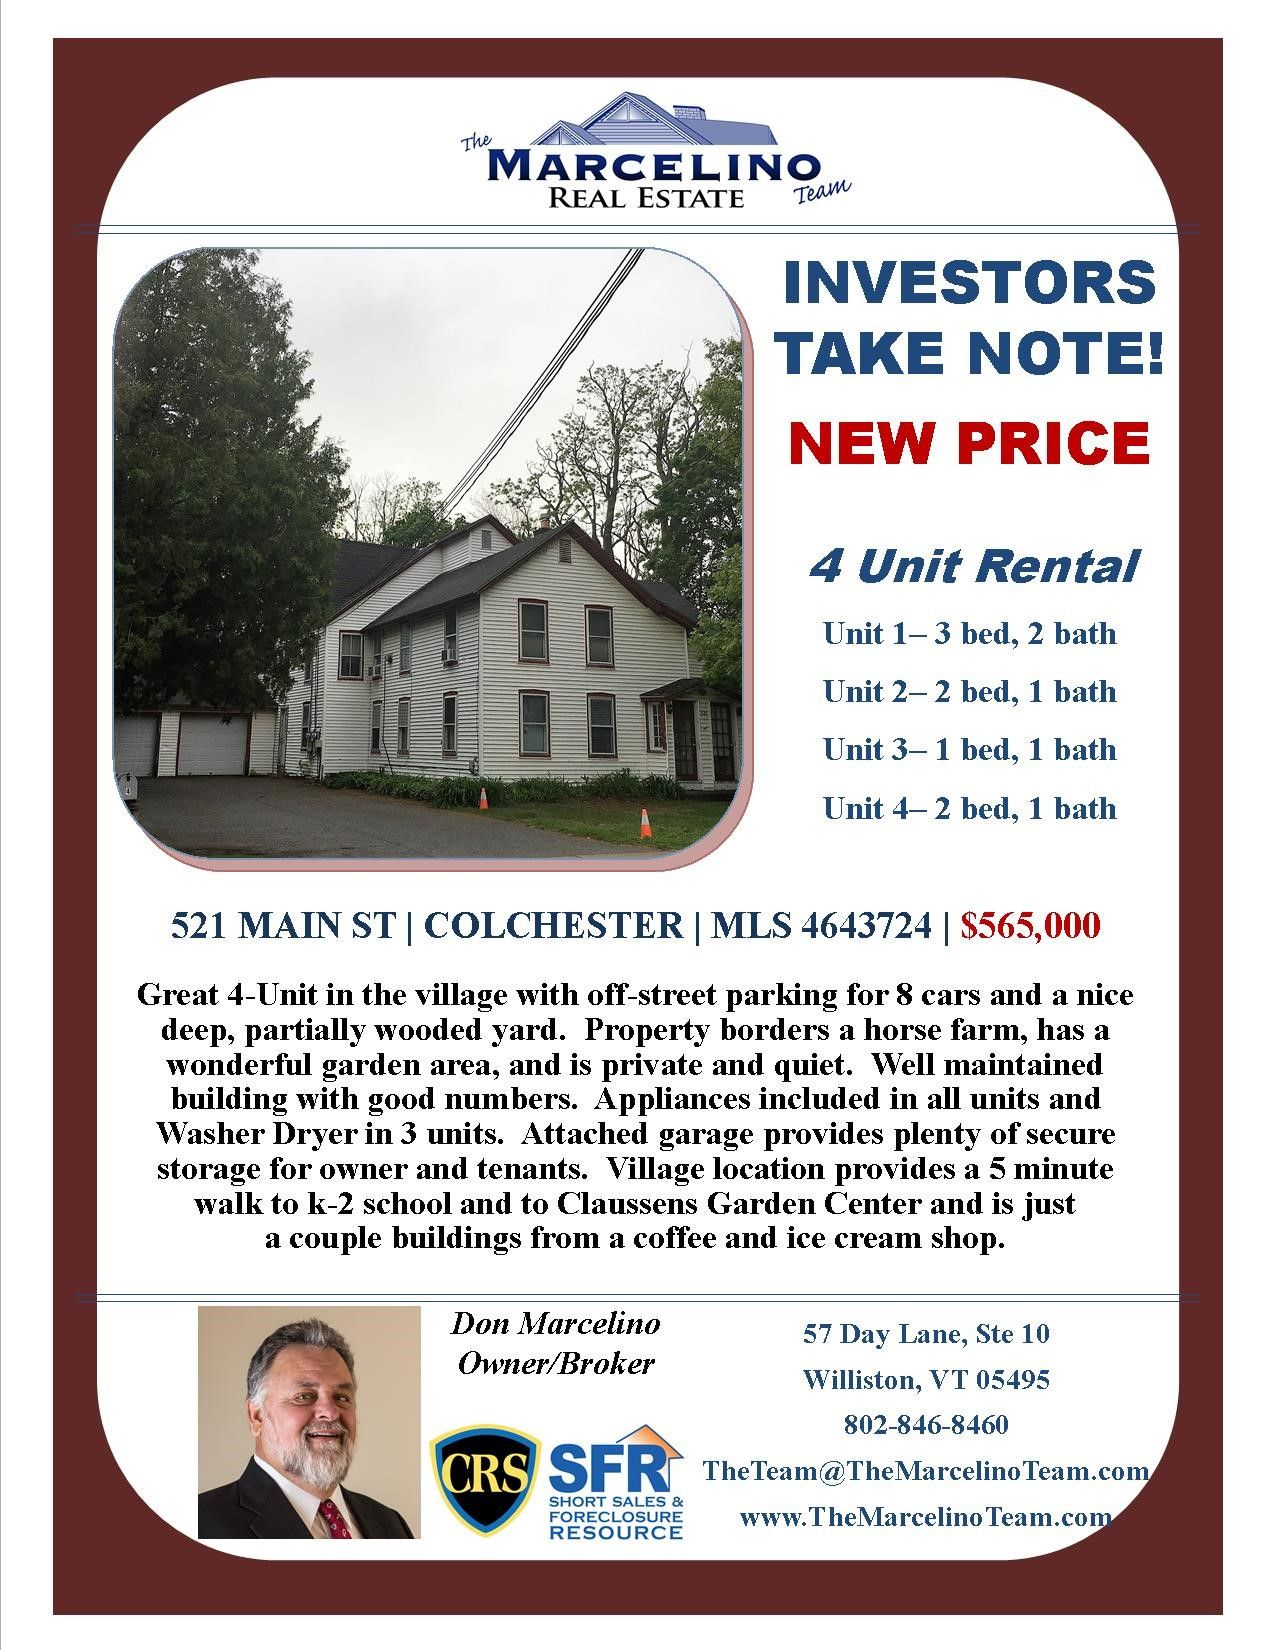 521 Main Colchester VT Multi-family Real Estate Listing MLS #4643724  sc 1 st  Pinterest & 521 Main Street Colchester VT 05446 | Secure storage and Horse farms